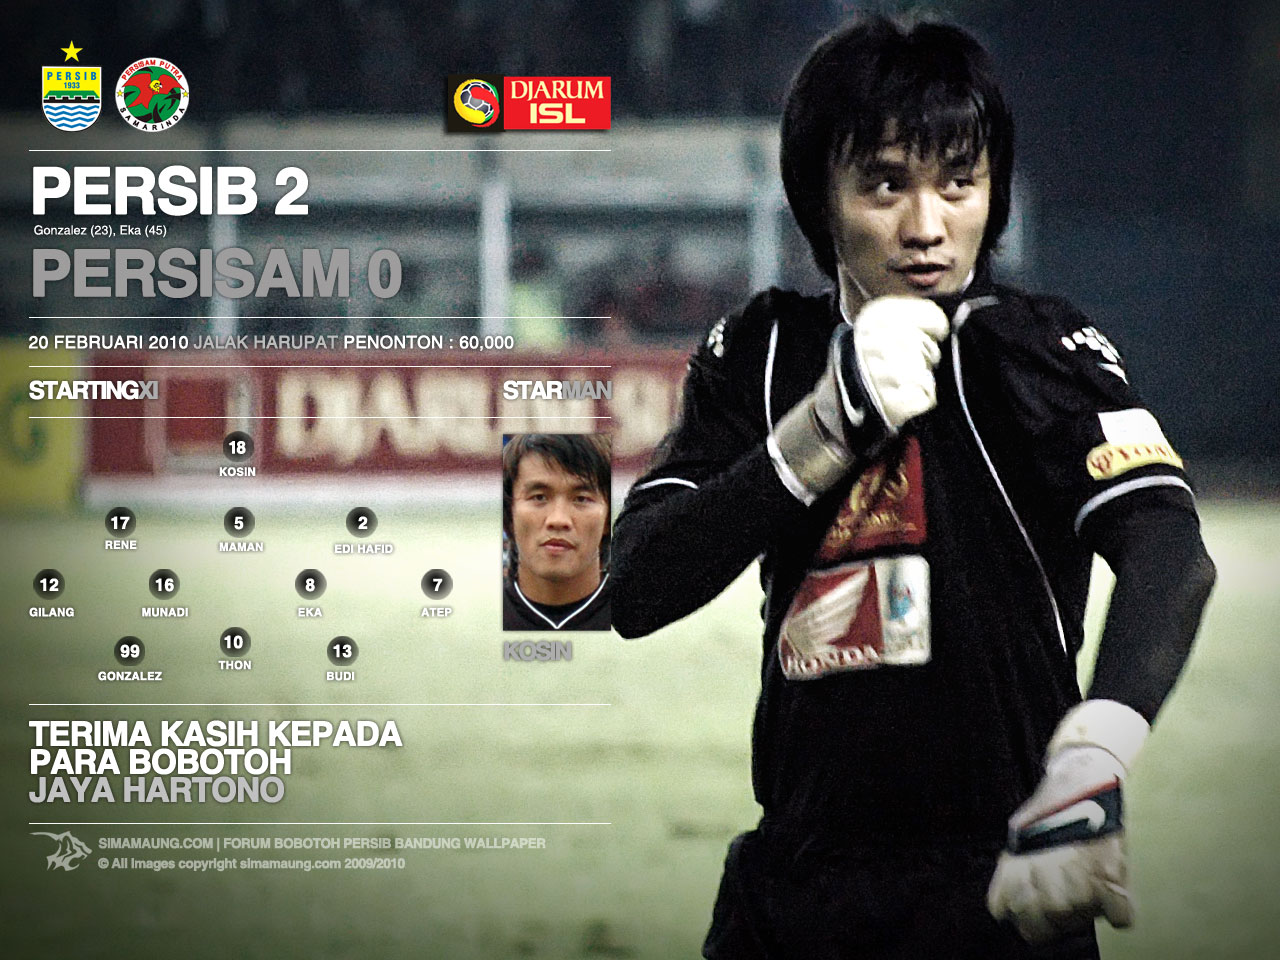 wallpaper pamaen persib